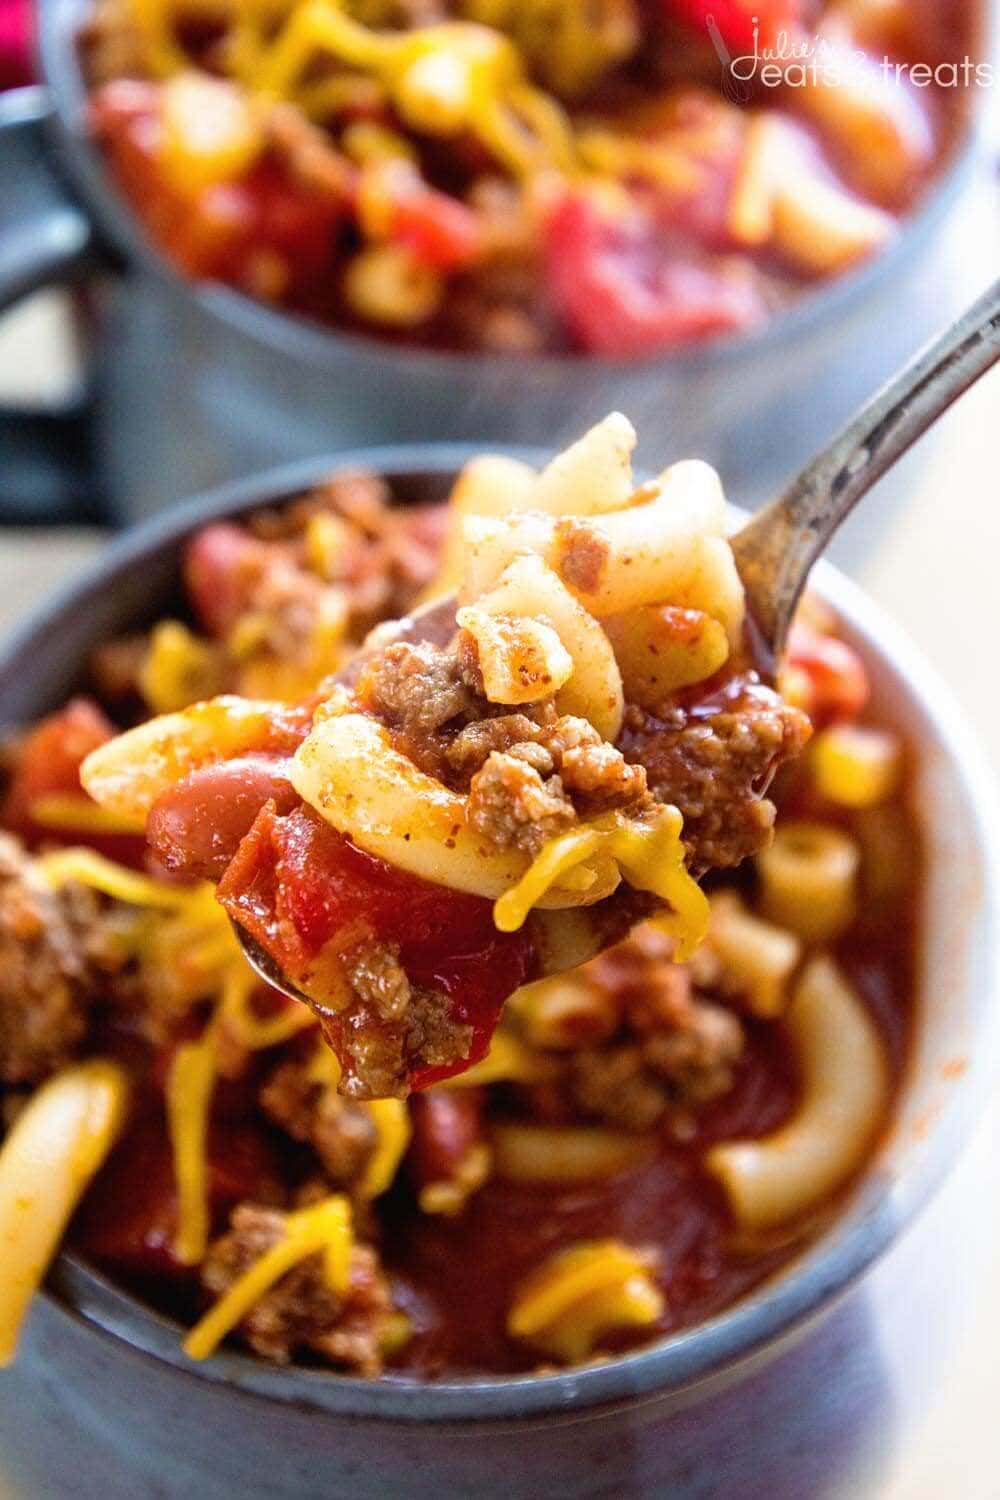 Two servings of Chili Mac recipes with Chili Mac on Spoon.